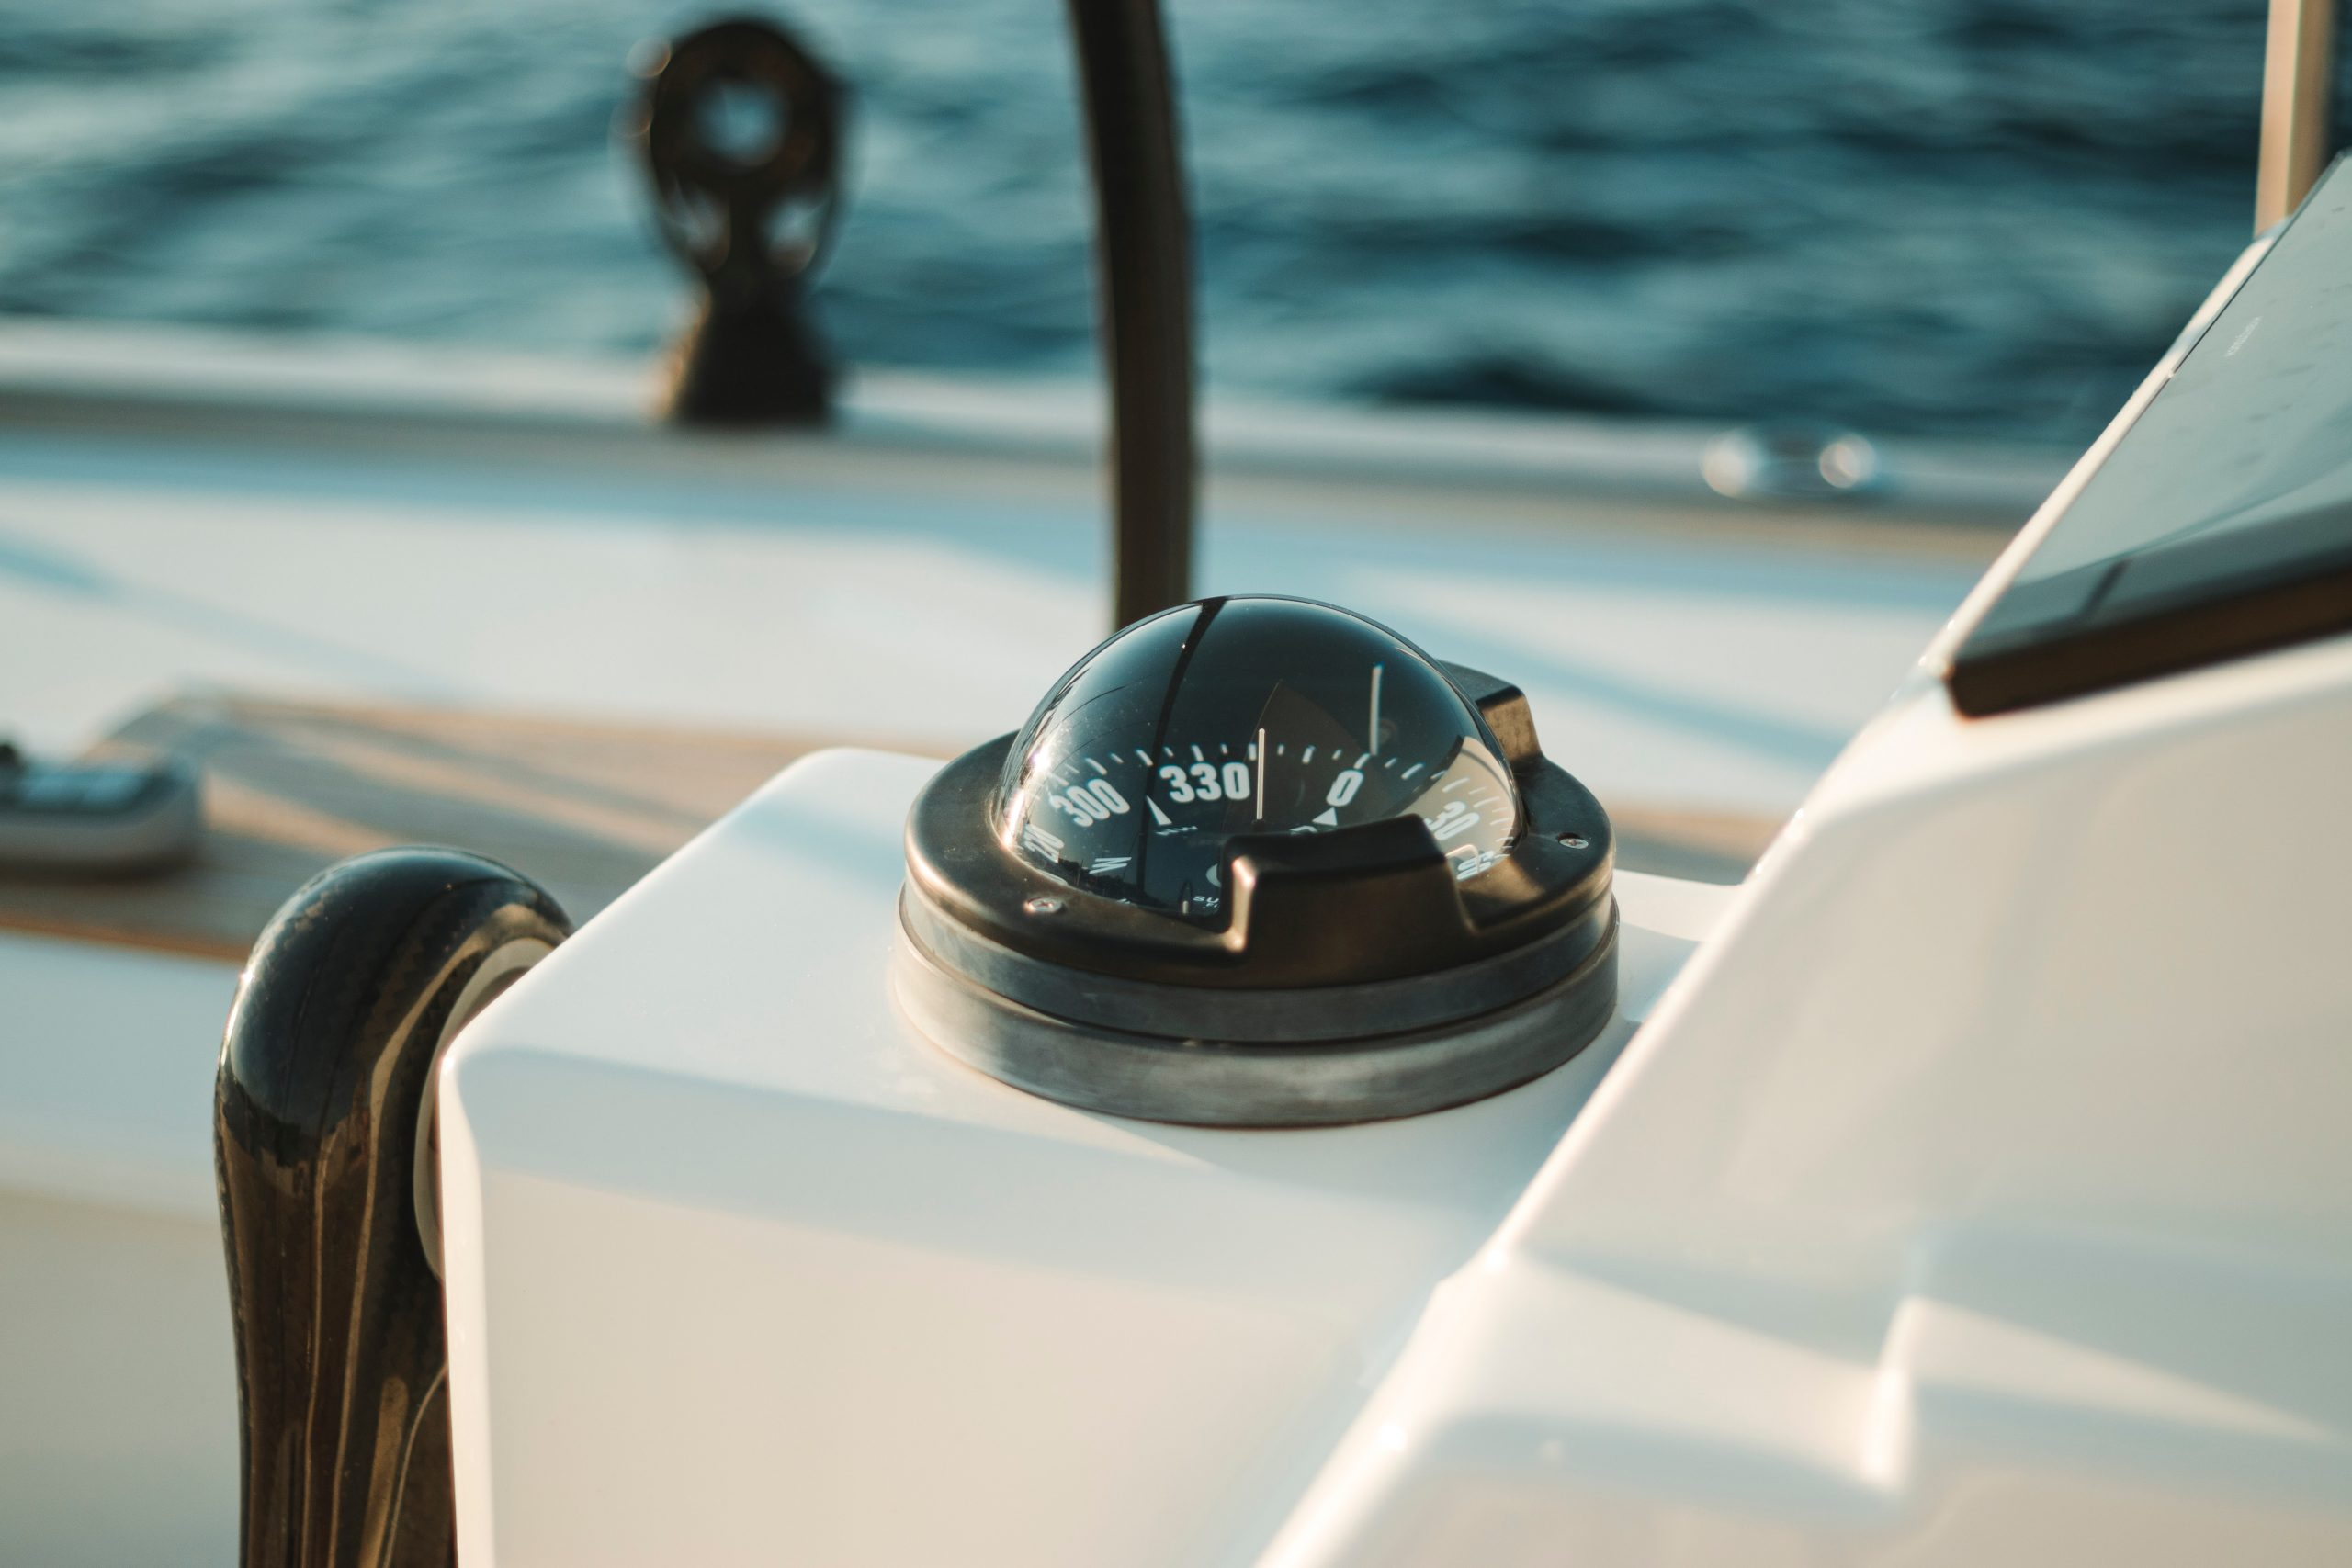 Picture of boat compass to navigate with